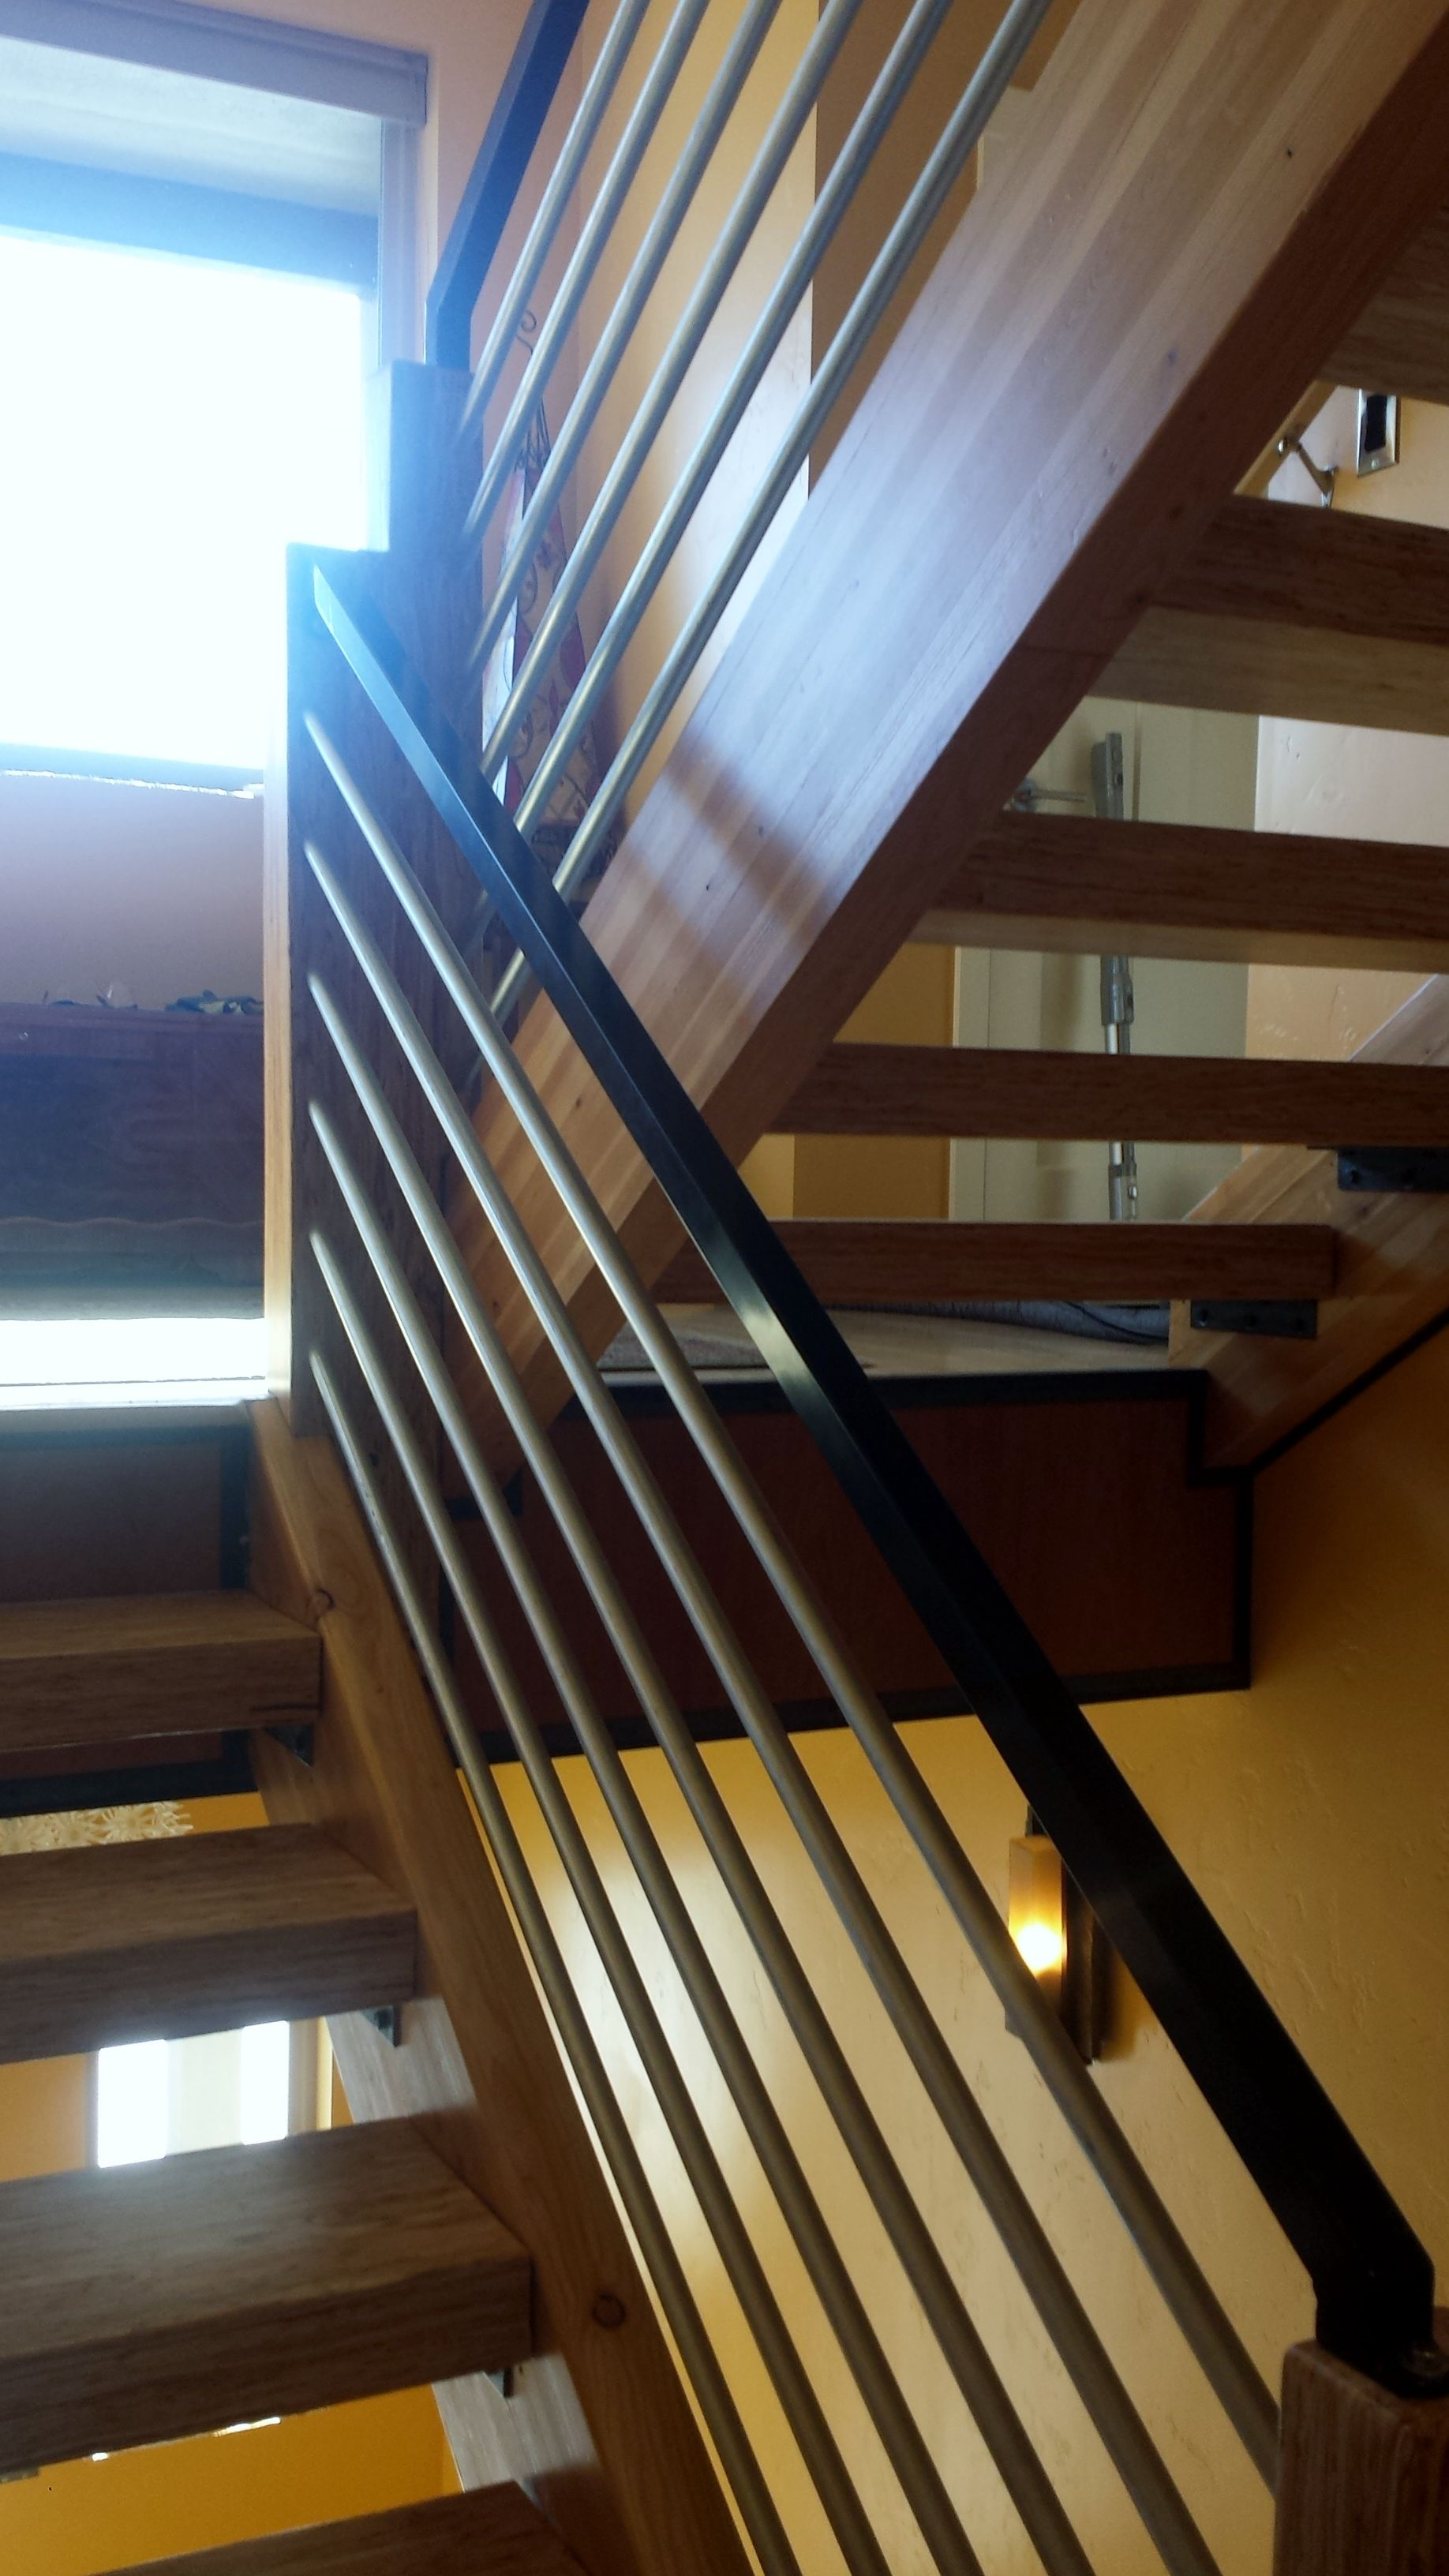 Interior Stair Railing Fabricated And Installed By Frontier Fence Company In Boise Idaho Treasure Valley